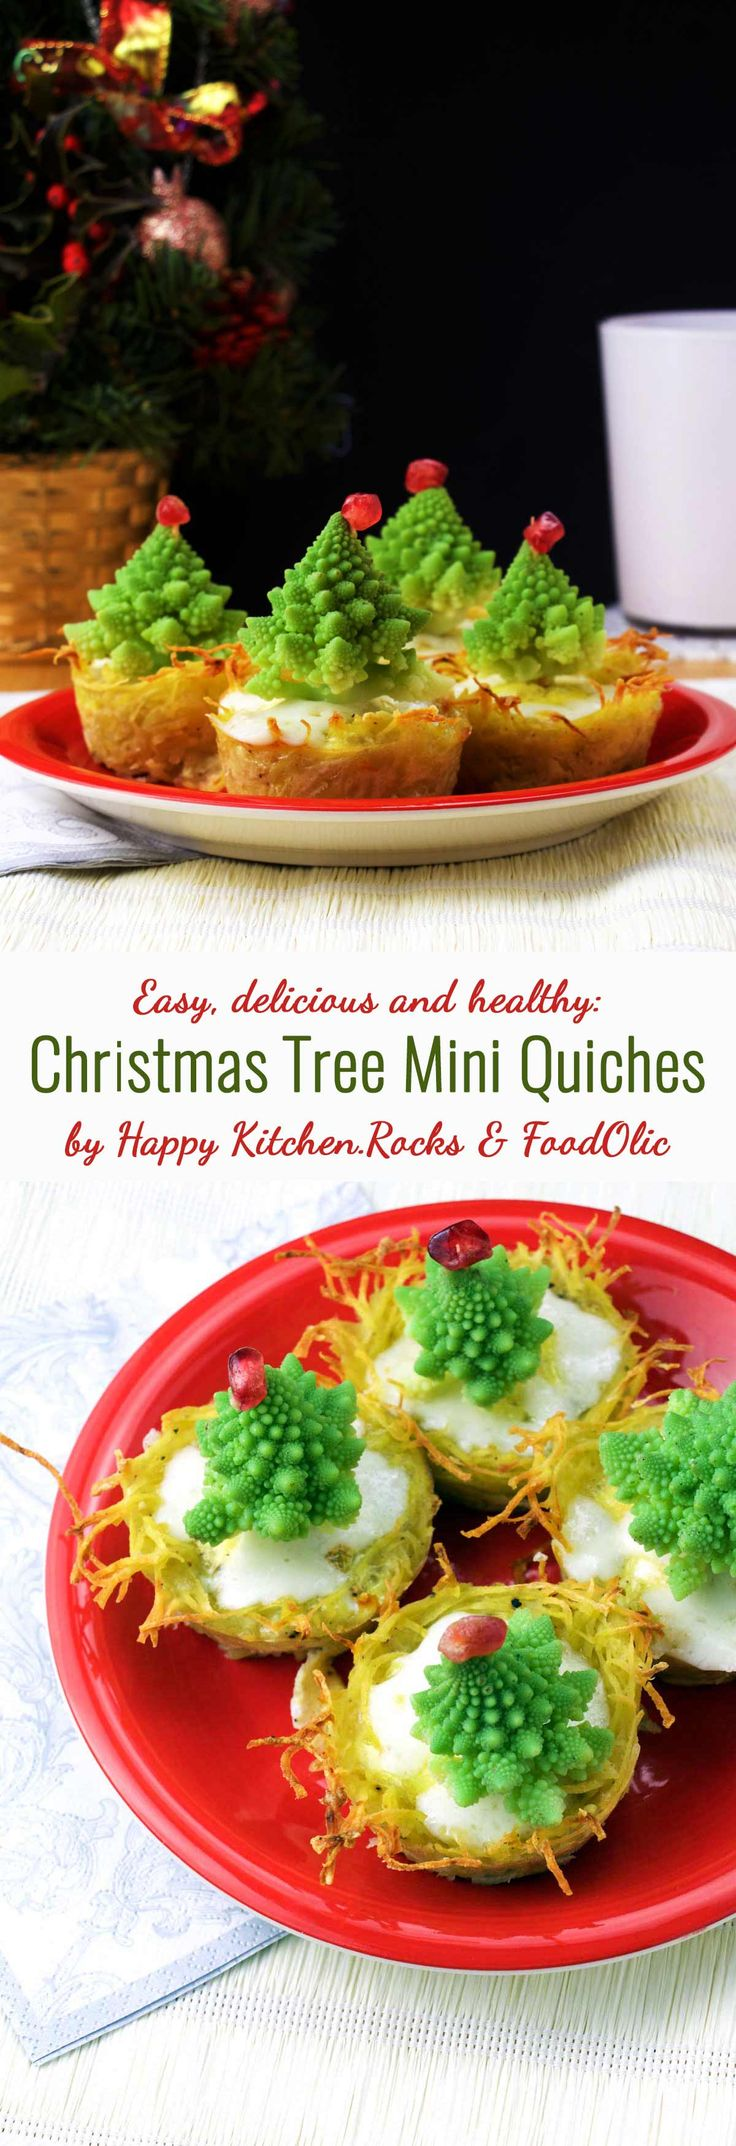 Christmas Tree Mini Quiches